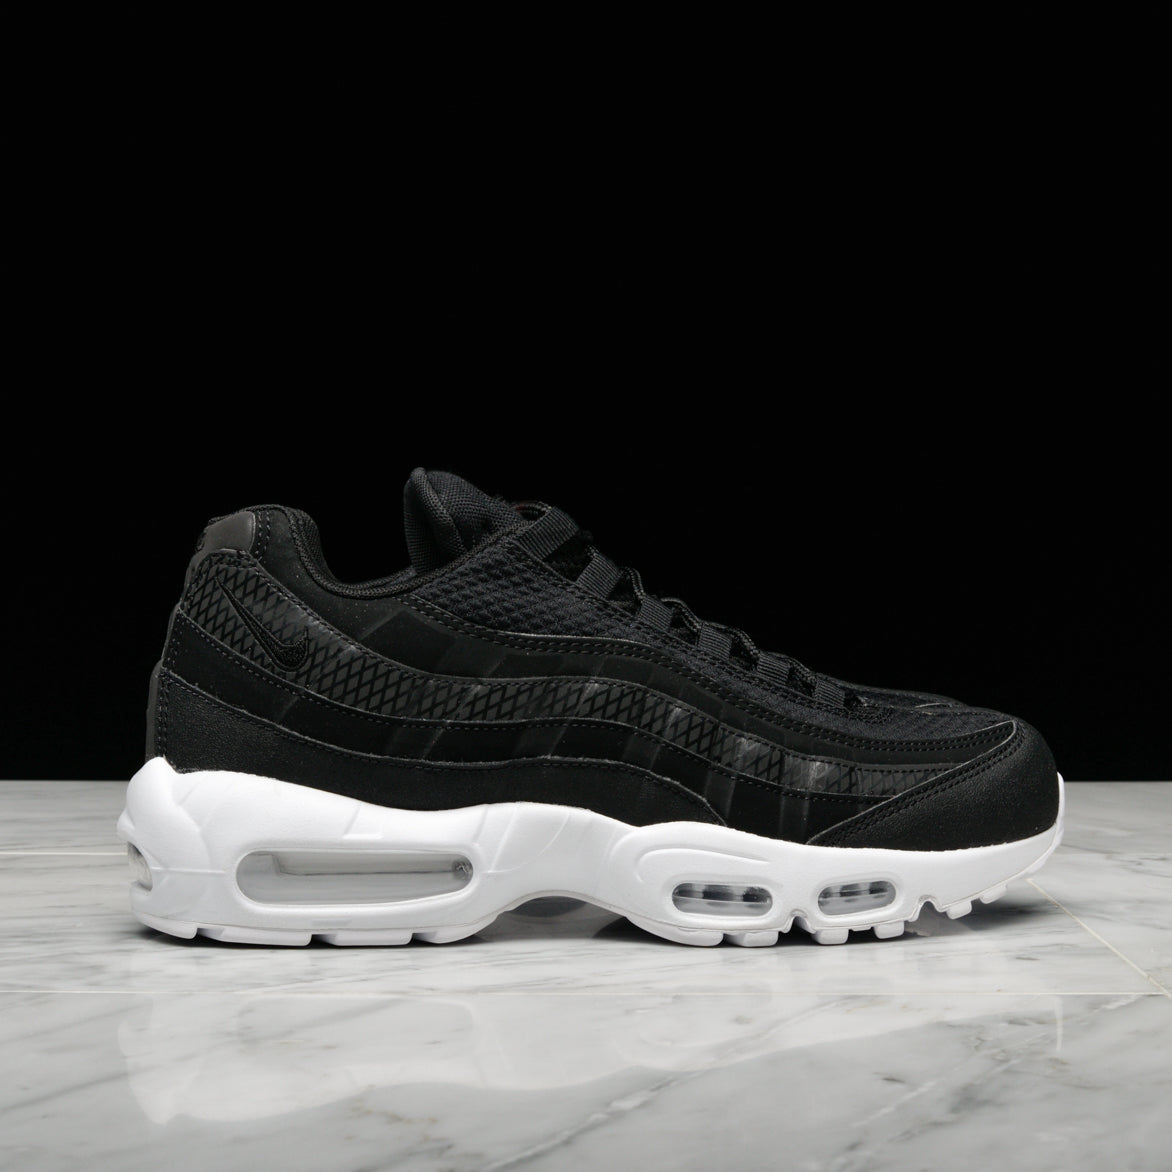 best service 83cc0 14488 AIR MAX 95 PREMIUM SE - BLACK   WHITE   TEAM ORANGE   lapstoneandhammer.com